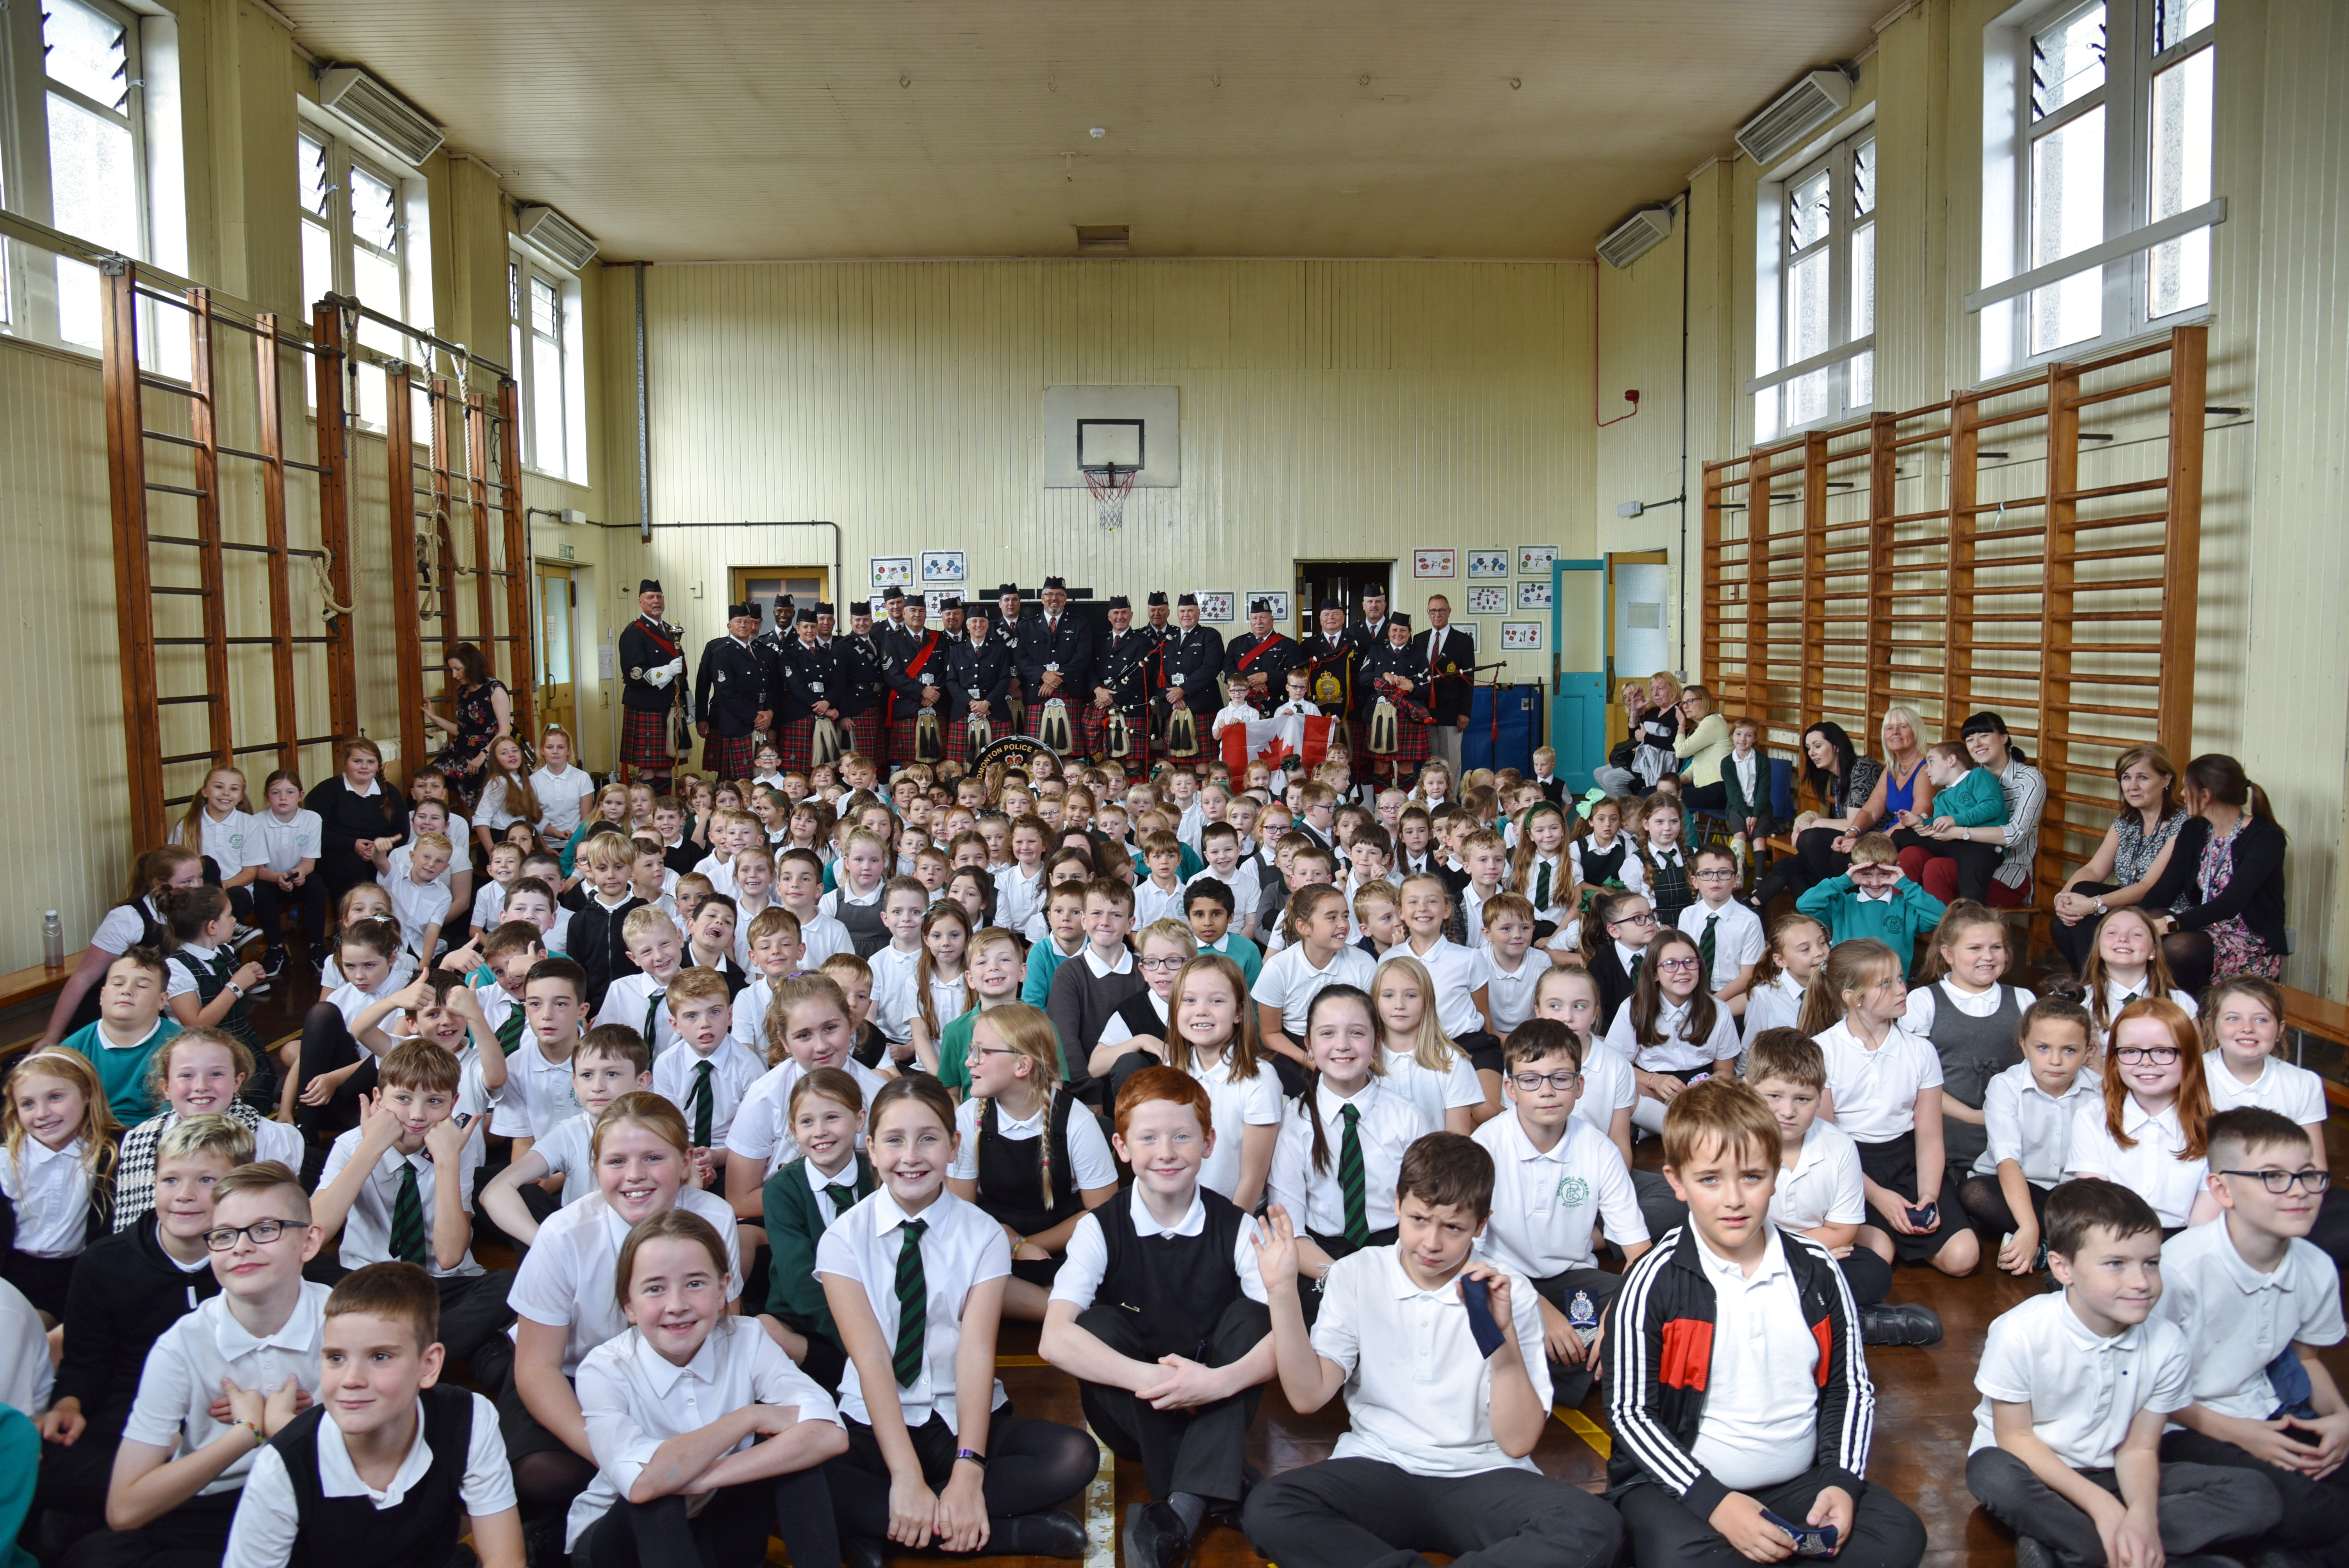 Greenmill Primary